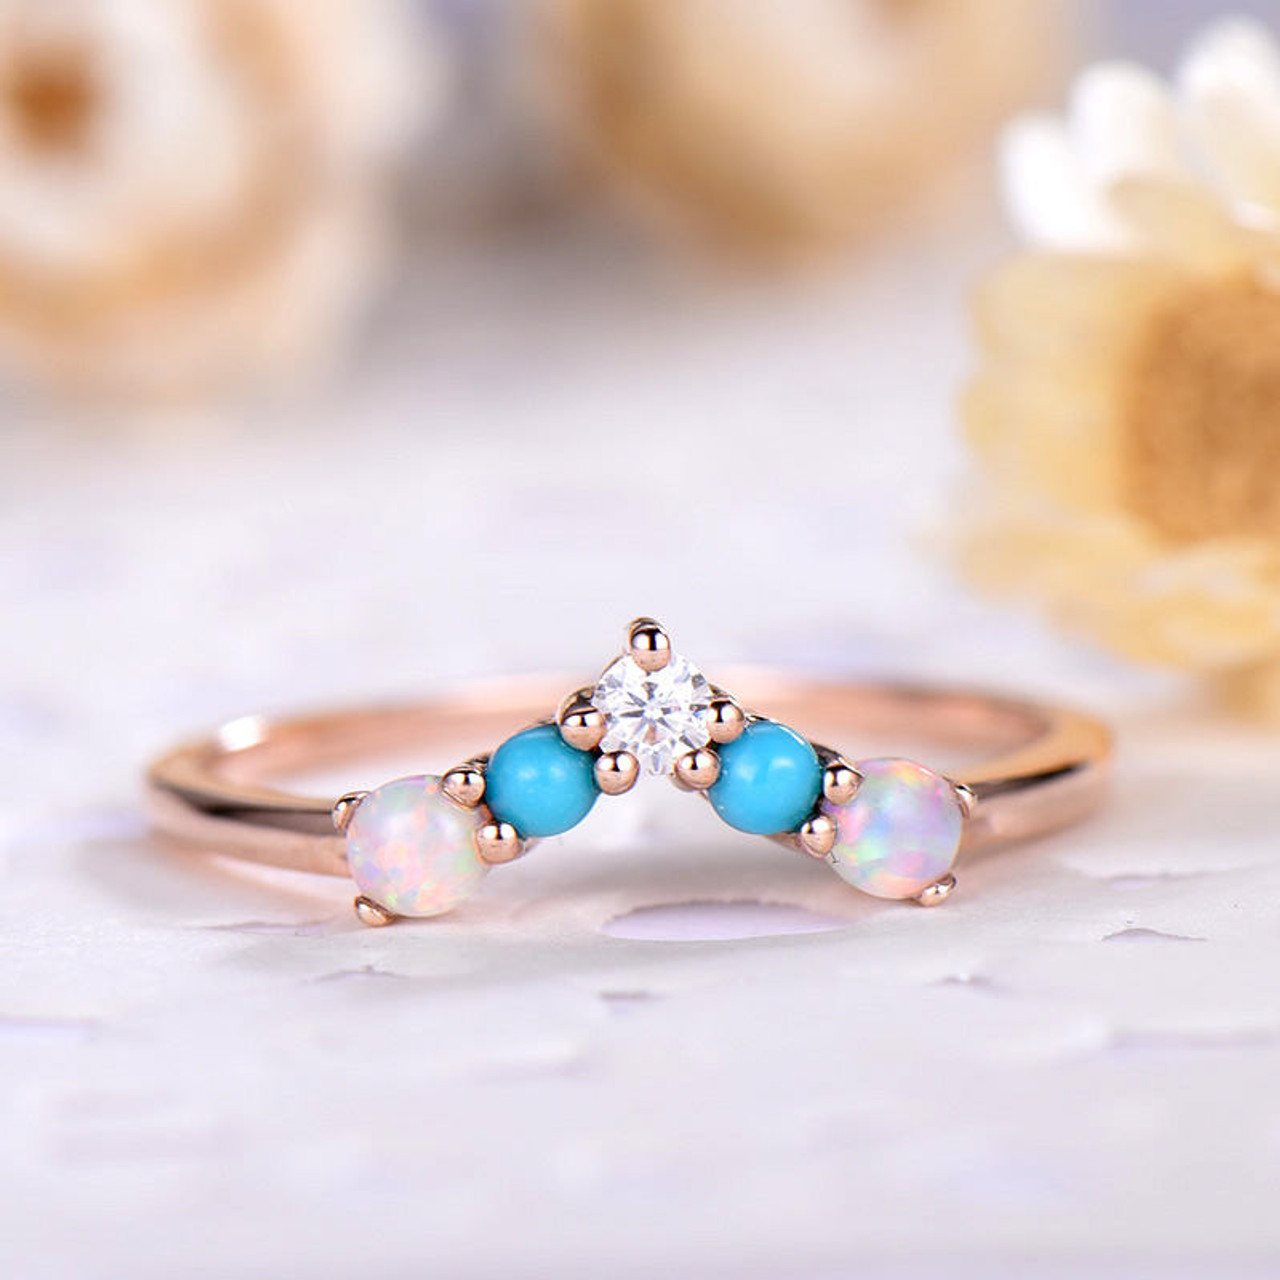 Opal Wedding Band.Opal Wedding Band Rose Gold With Turquoise V Eternity Wedding Ring In 925 Sterling Silver Man Made Cz Diamond Unique Matching Band